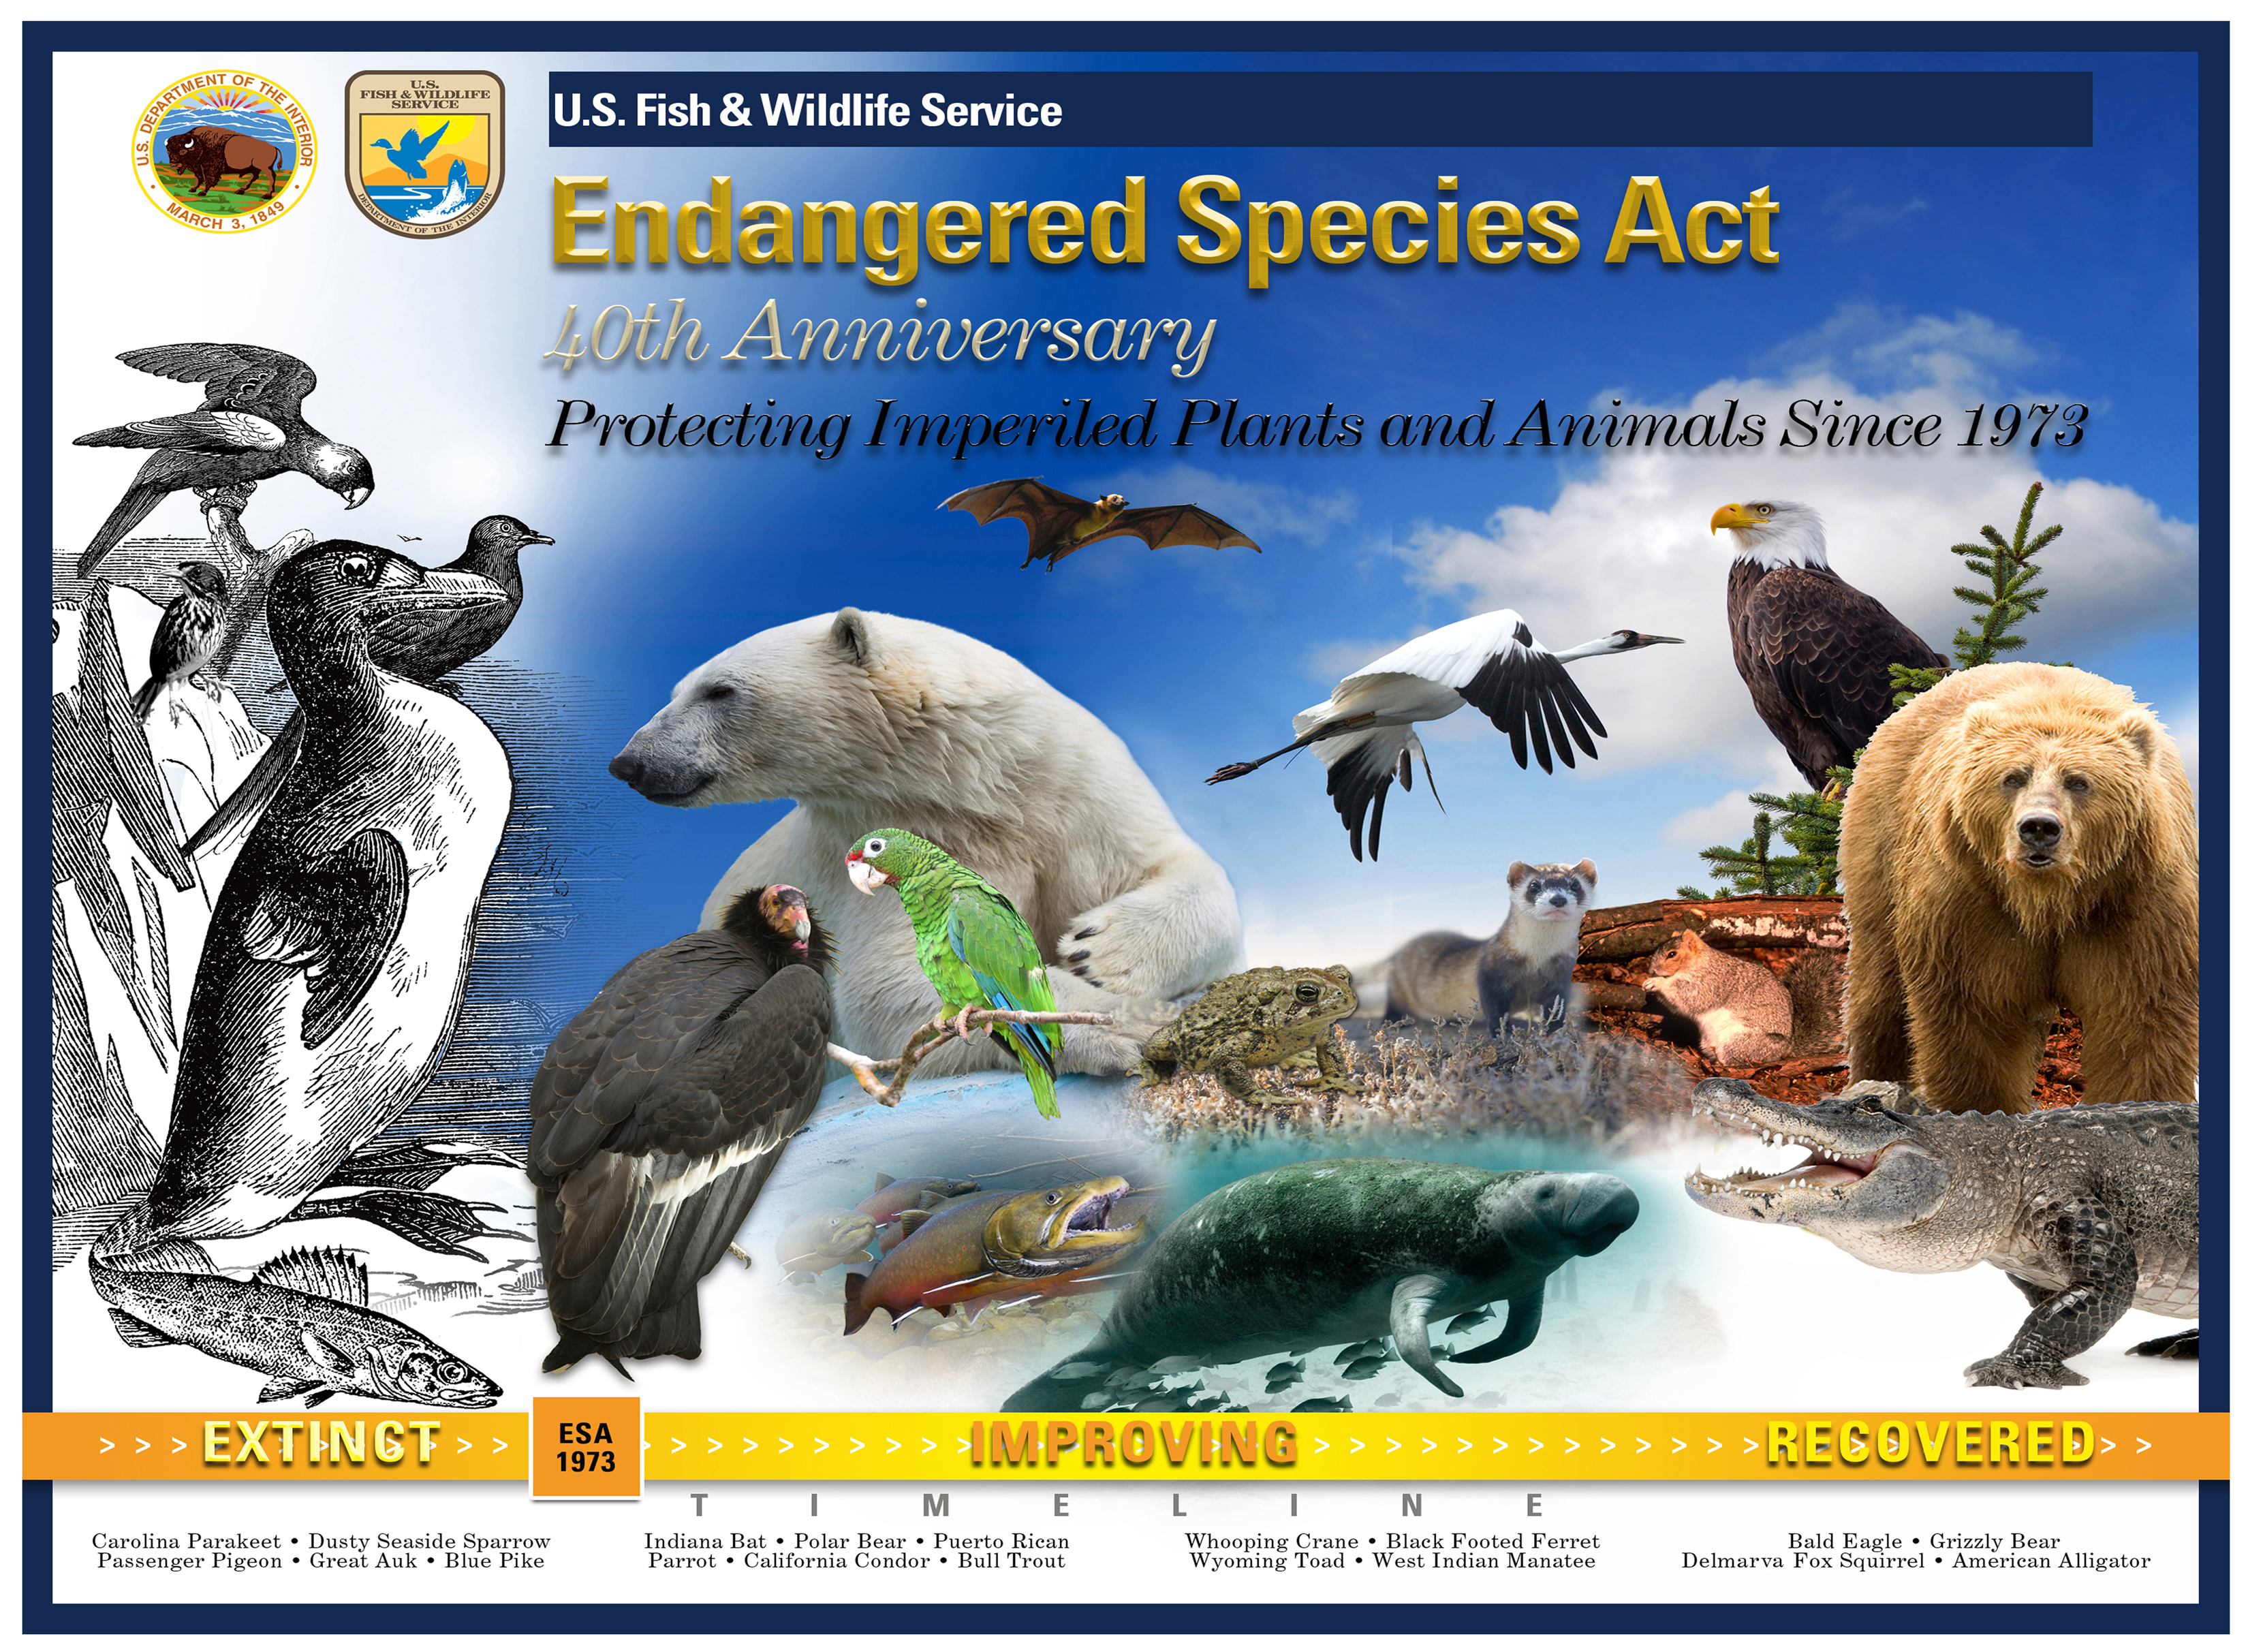 the legacy and future of the endangered species act | the whisker